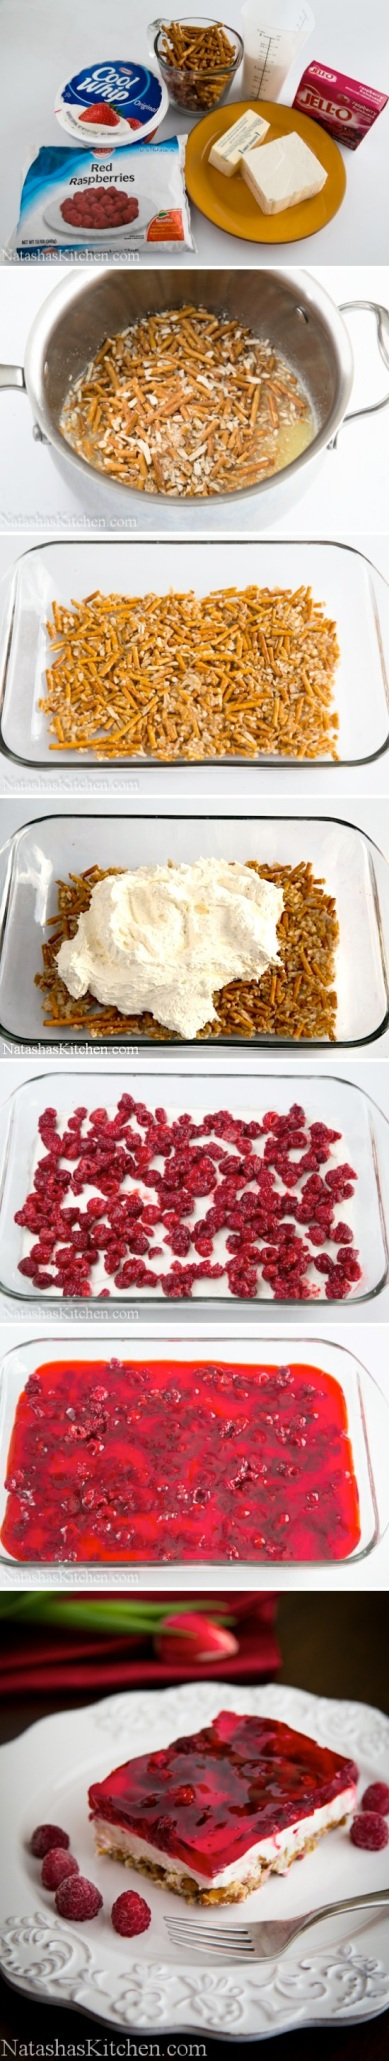 Raspberry Cool Whip Cheese Pretzel Jello by cupcakepedia, jello, raspberries, cool whip, whipped cream, cheese